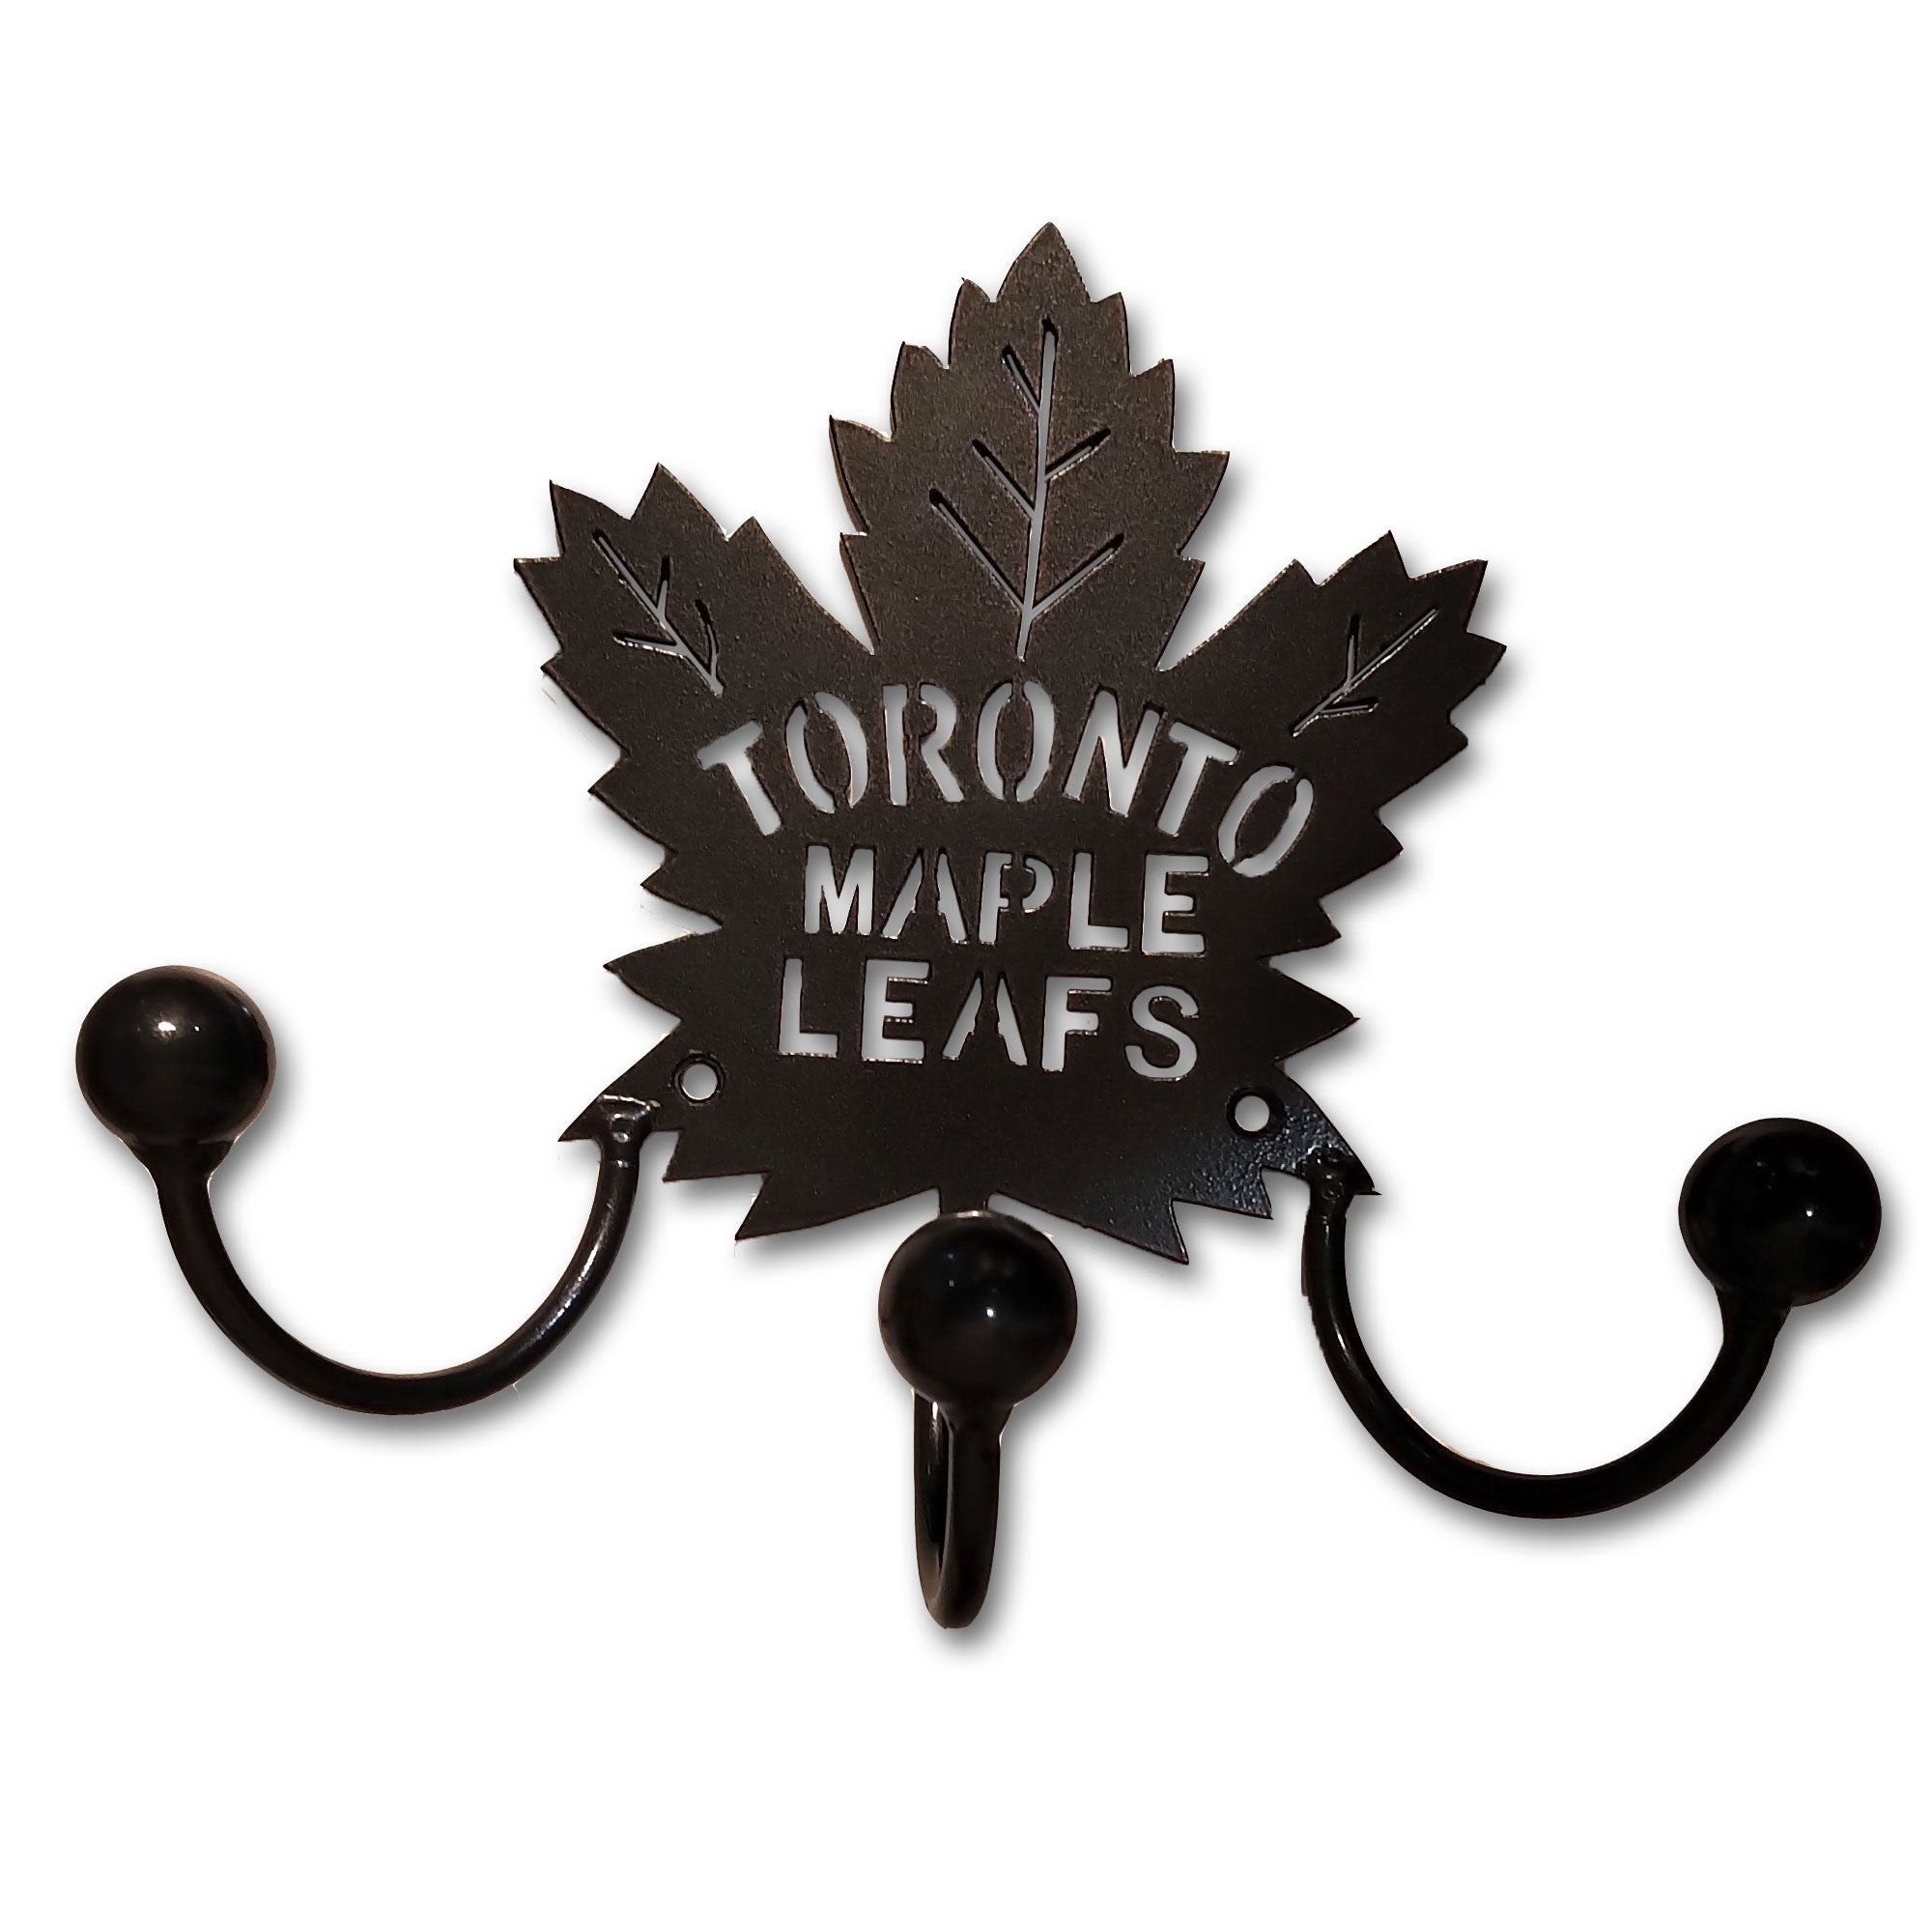 Toronto Maple Leaf Home Decor Award Displays Metal Hooks and Holders!